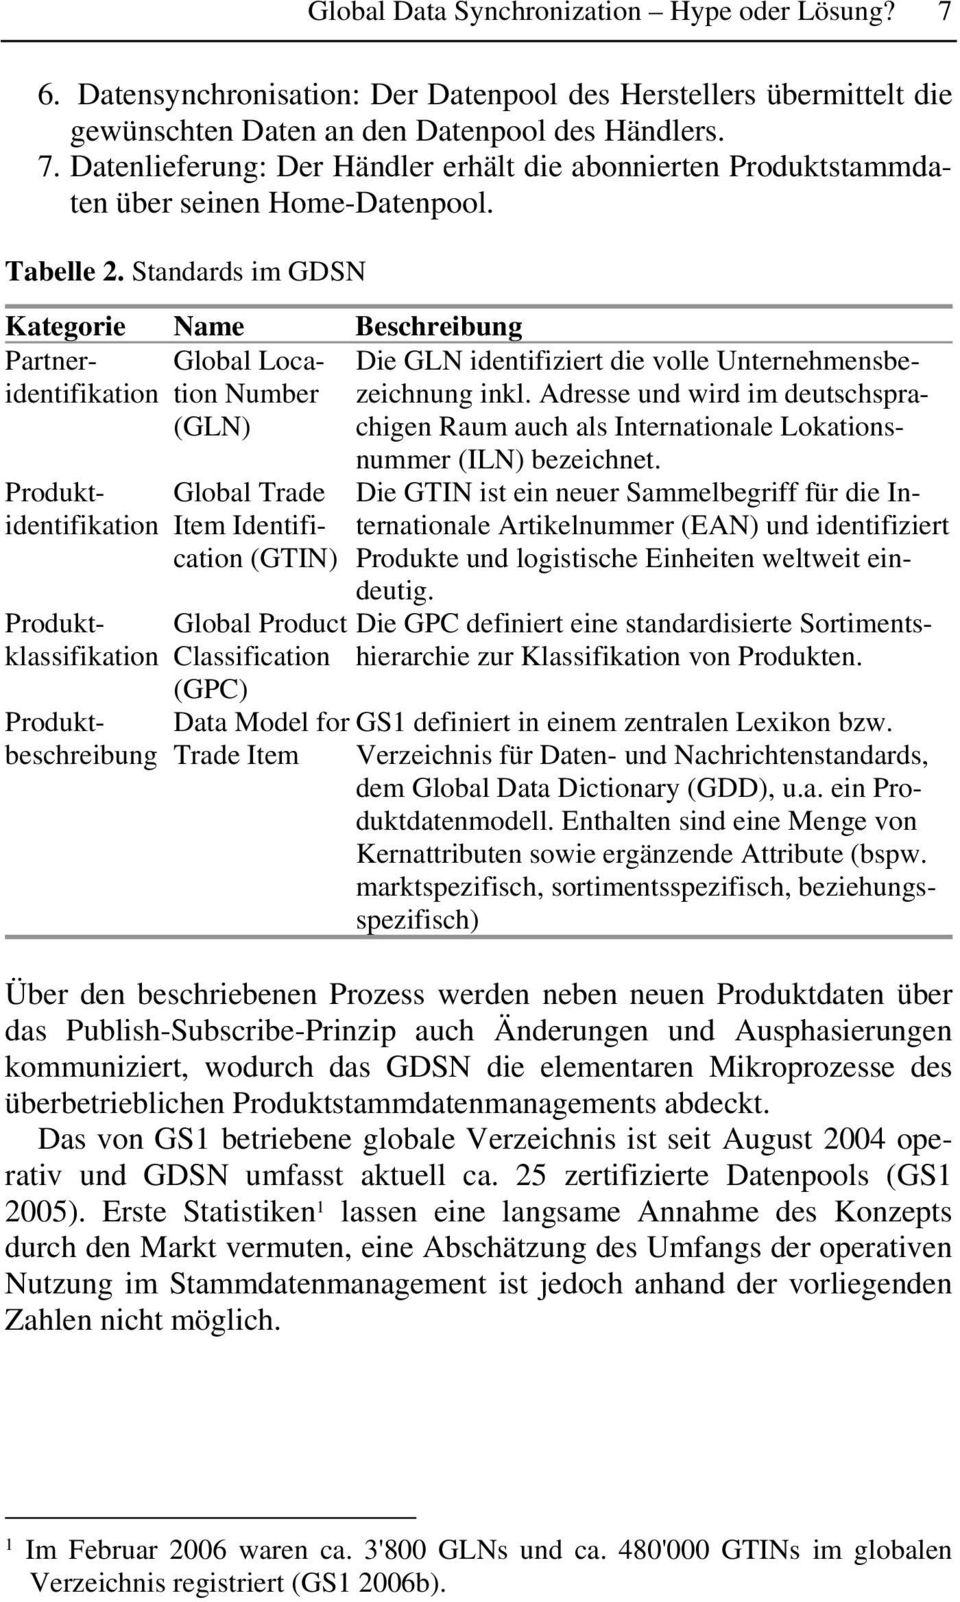 Standards im GDSN Kategorie Name Beschreibung Partneridentifikation Produktidentifikation Produktklassifikation Produktbeschreibung Global Location Number (GLN) Global Trade Item Identification